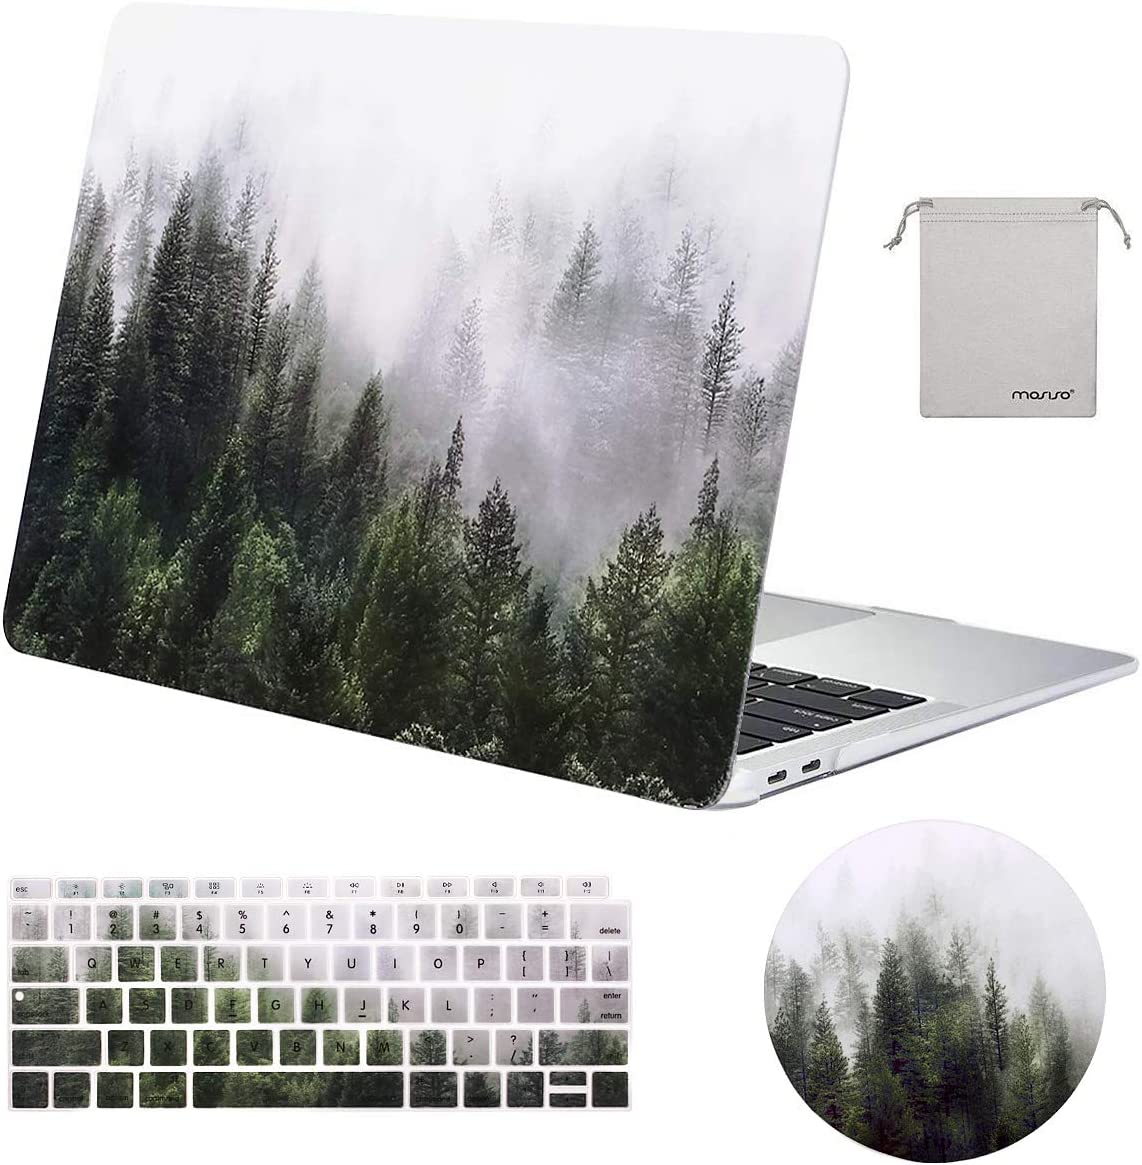 MOSISO MacBook Air 13 inch Case 2020 2019 2018 Release A2179 A1932 Retina Display,Plastic Pattern Hard Case & Keyboard Cover & Mouse Pad & Storage Bag Only Compatible with MacBook Air 13, Green Forest